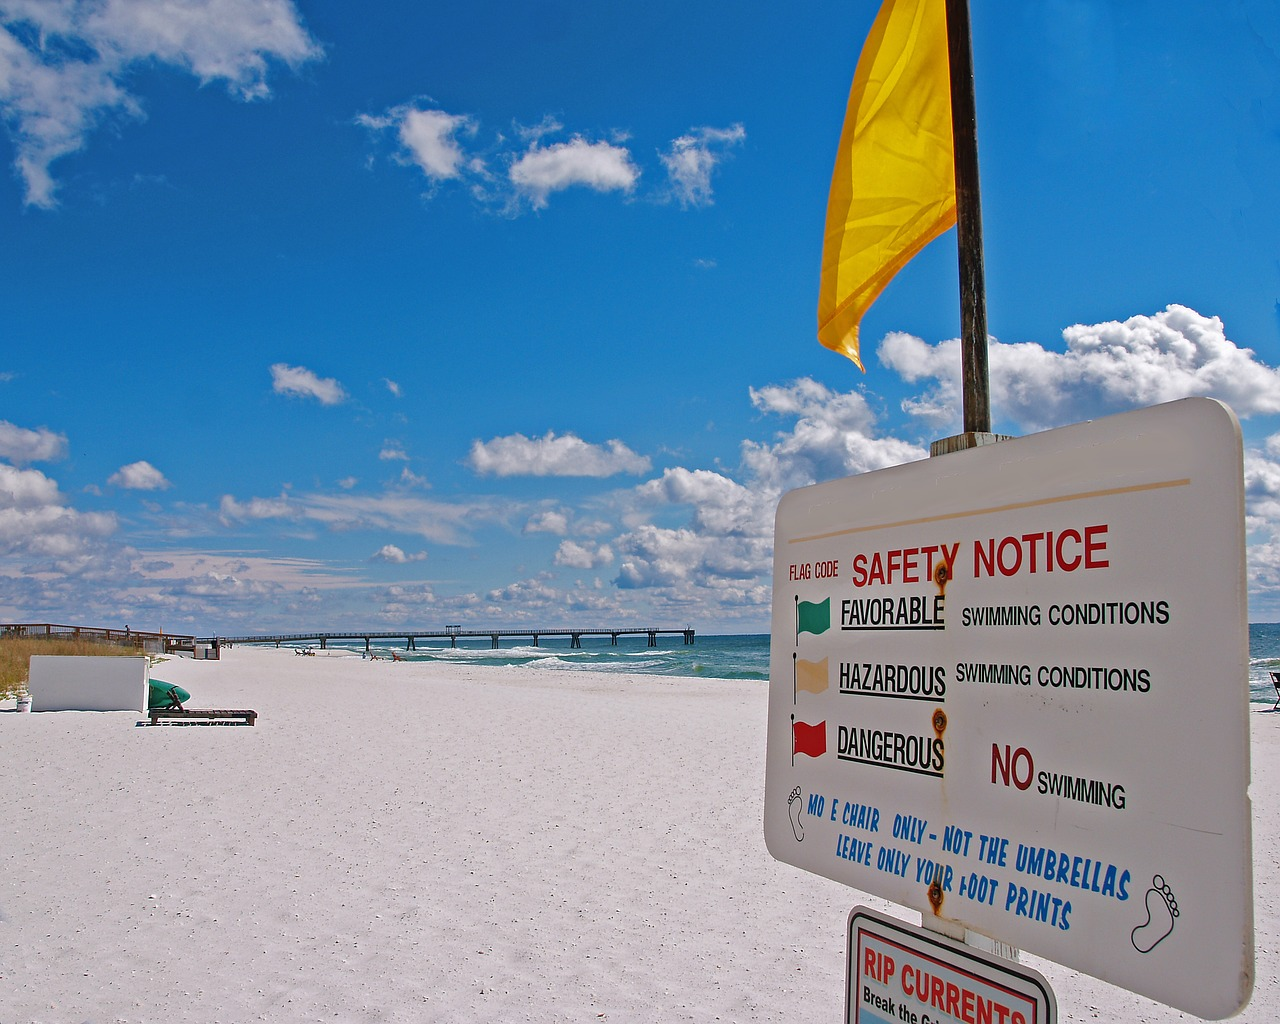 Beach Safety Tips For Children and Adults